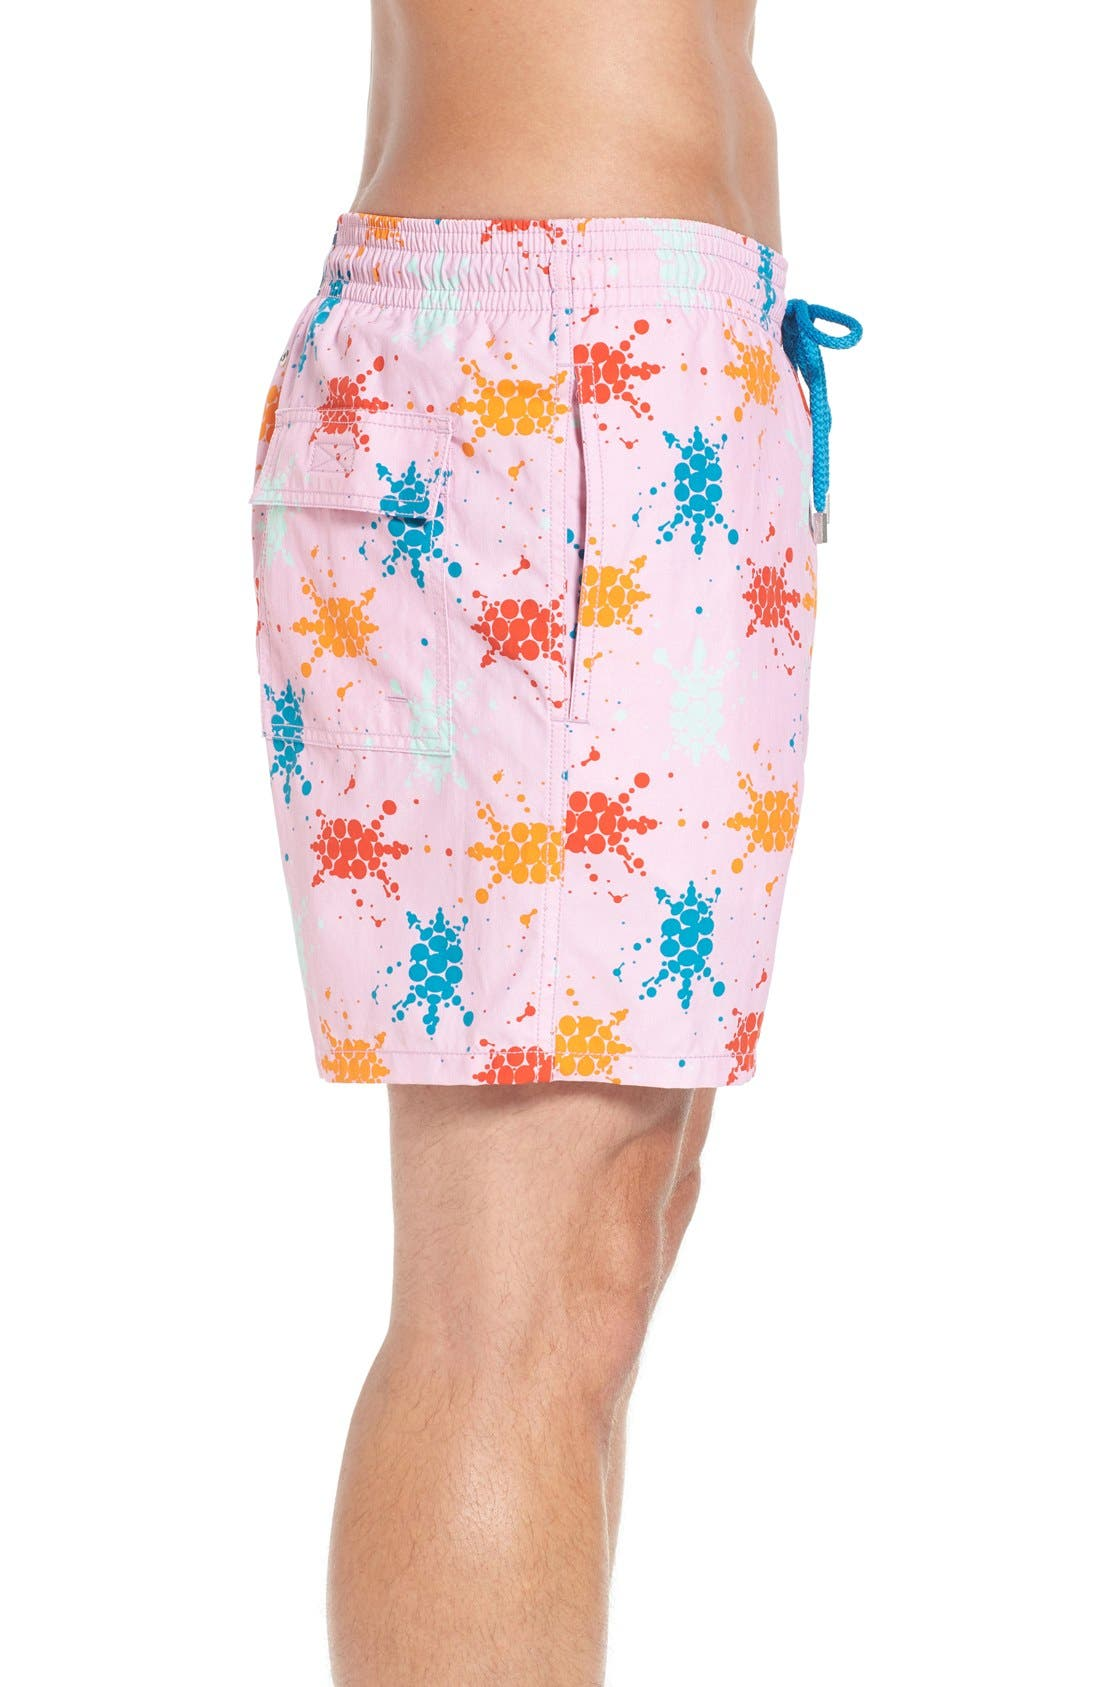 Japan Turtles Print Swim Trunks,                             Alternate thumbnail 3, color,                             659